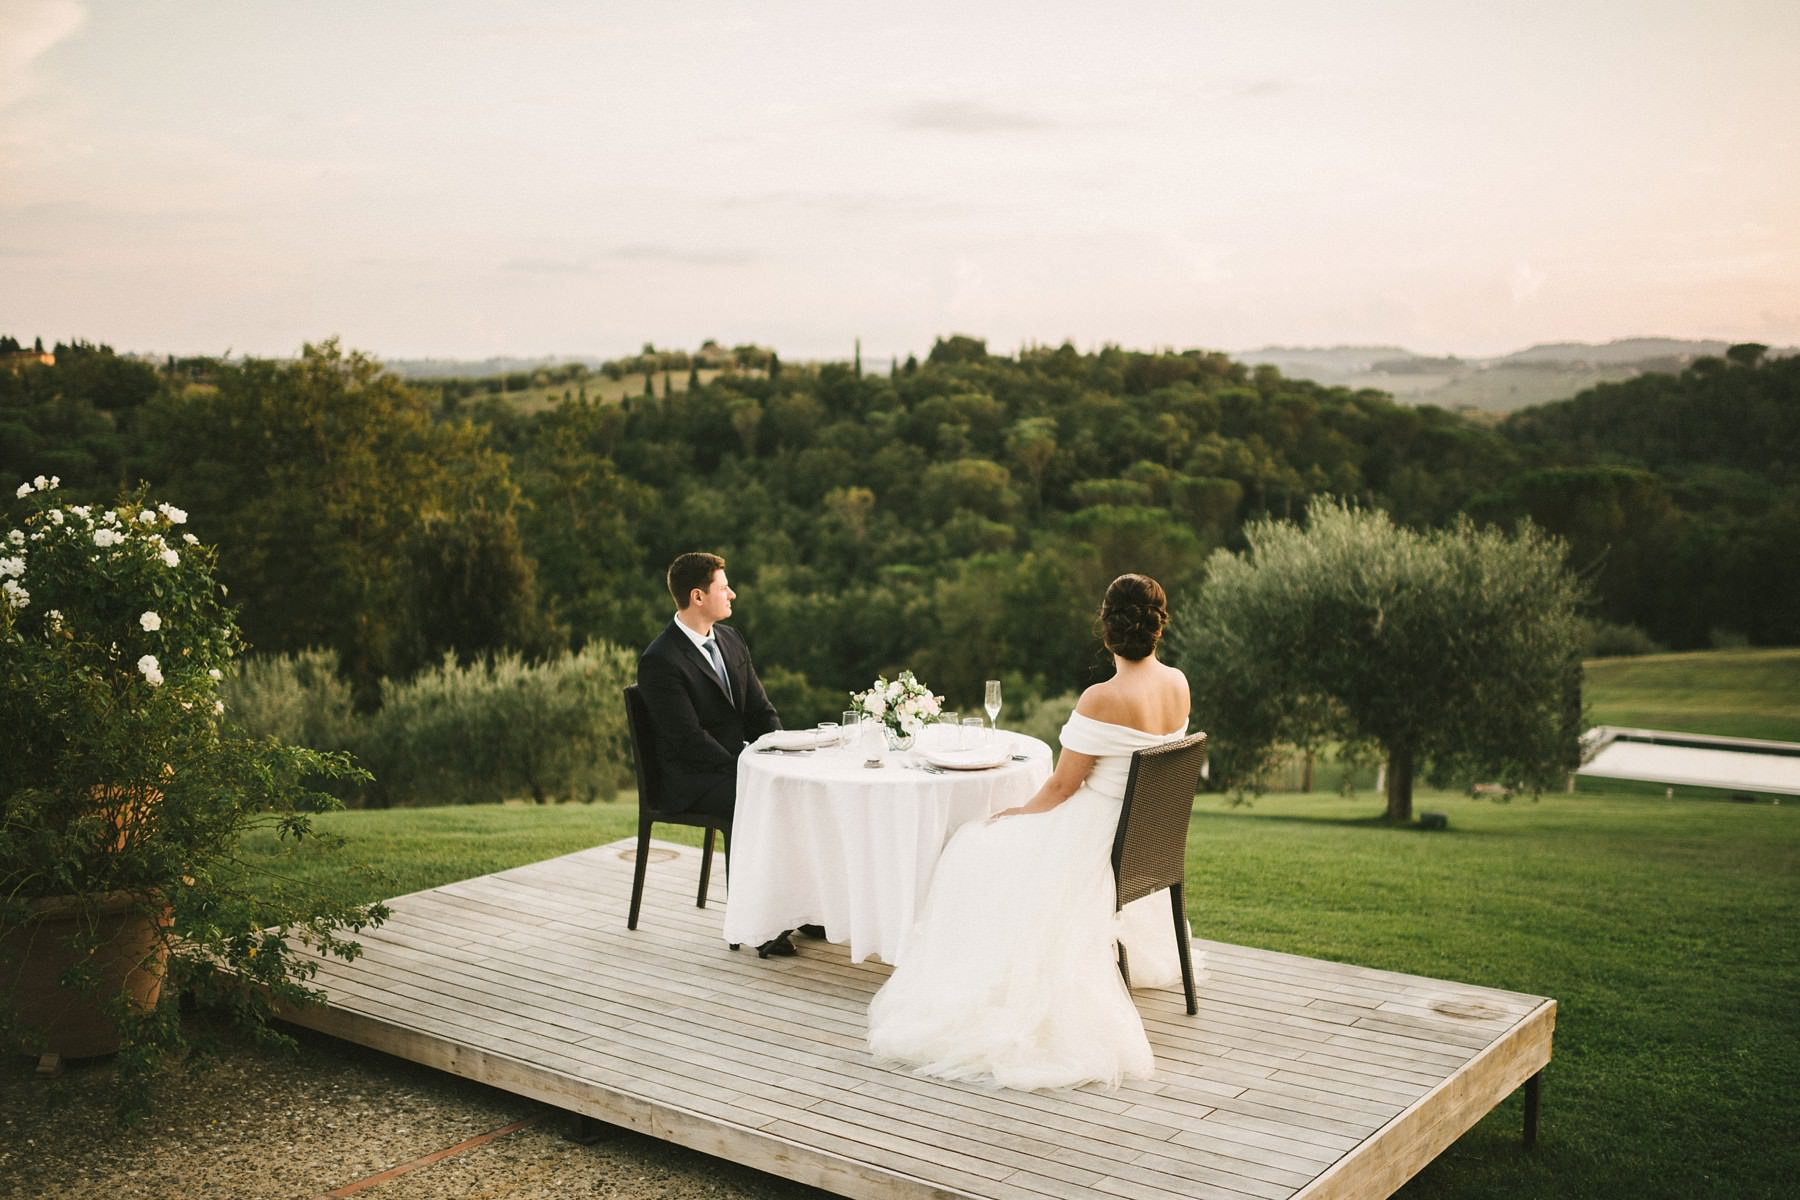 Dreamy couple portraits at the charming dinner setting. Elopement wedding in Tuscany countryside farmhouse Casetta